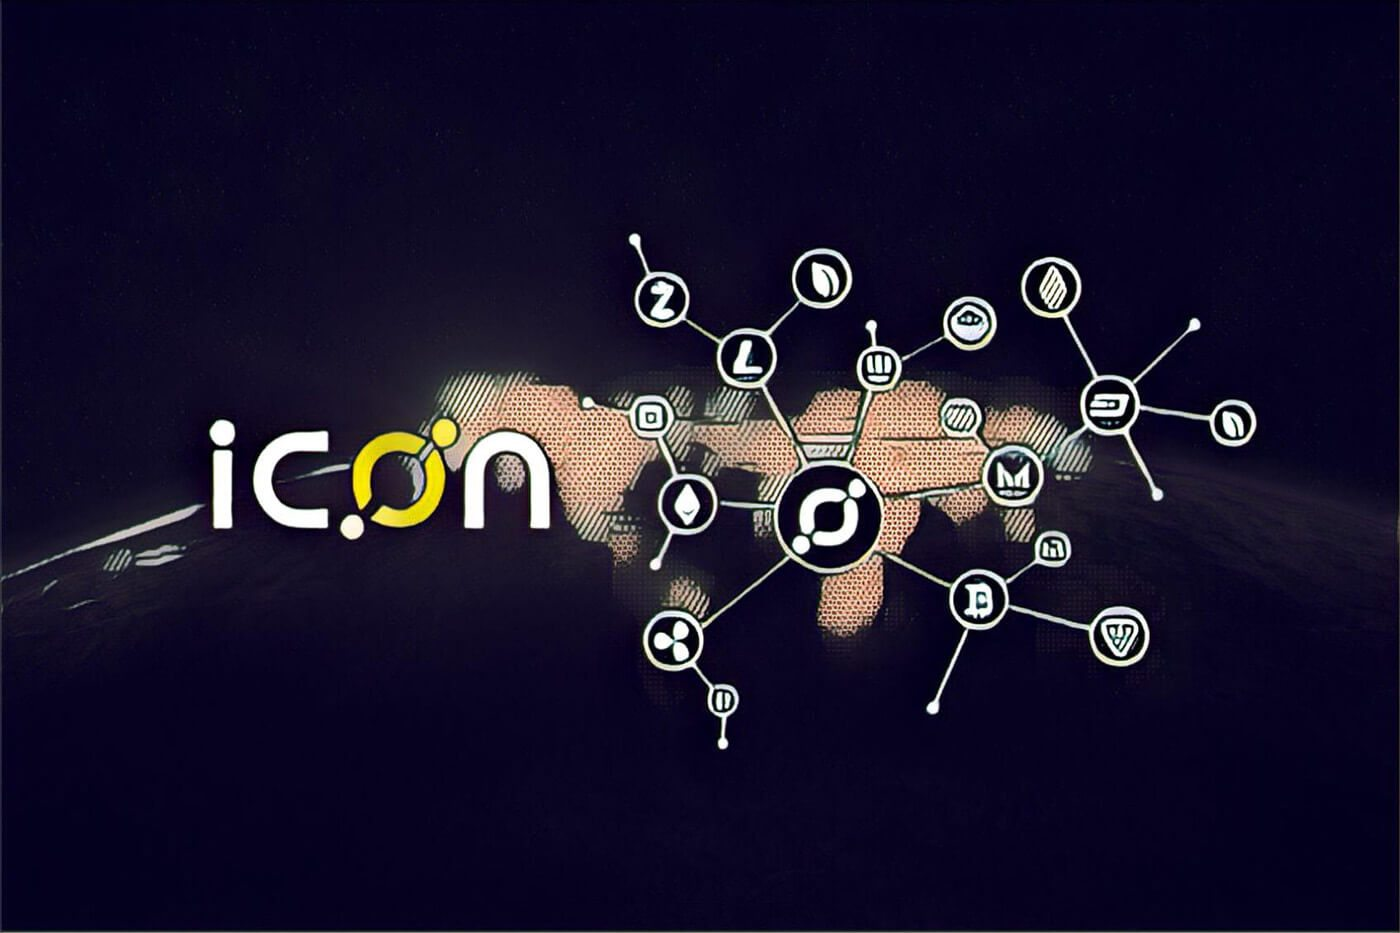 ICON Aims to Build The Largest Decentralized Networks